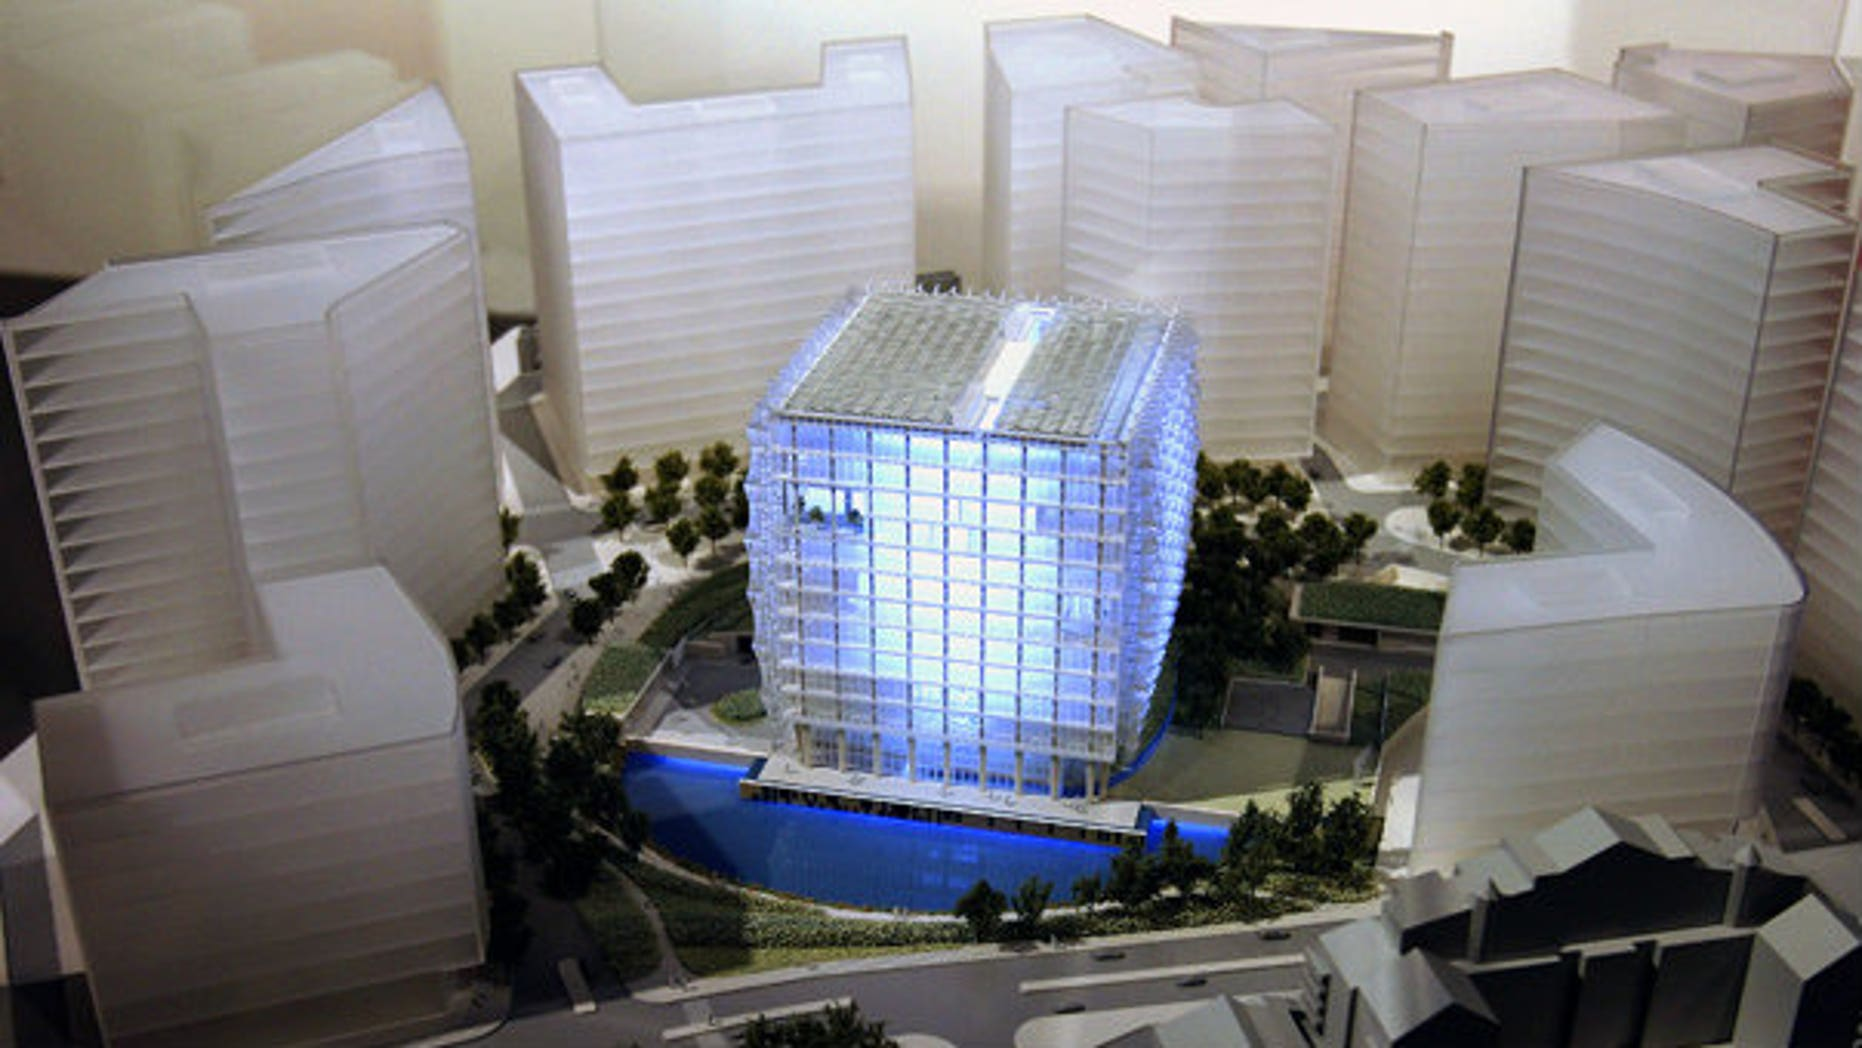 Feb. 23: A model of the winning design for the new U.S. Embassy for London.